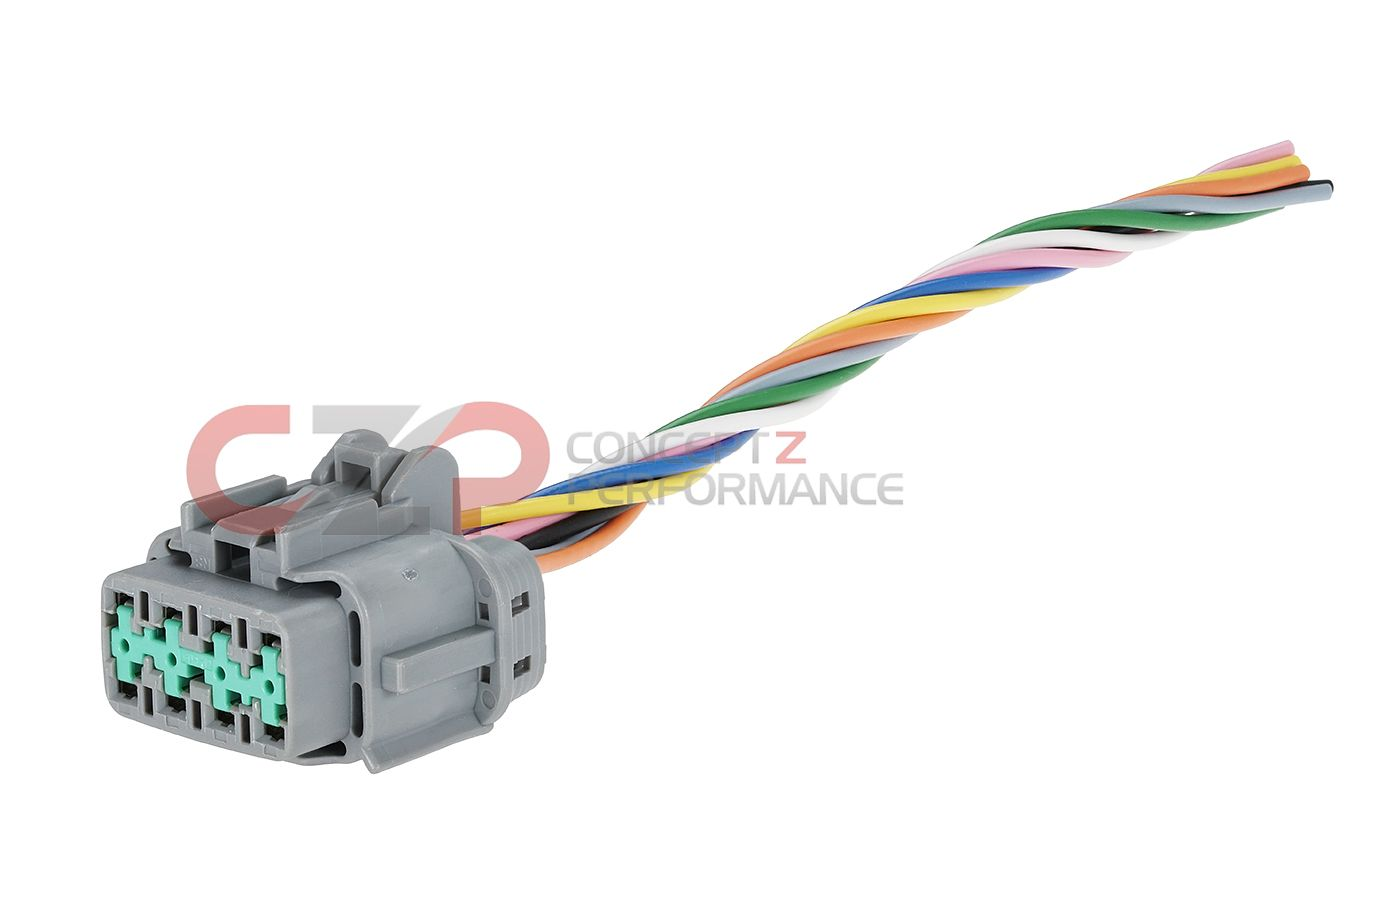 350z Headlight Wiring Harness Wire 2014 Mini Cooper Engine Diagram Begeboy Wiring Diagram Source